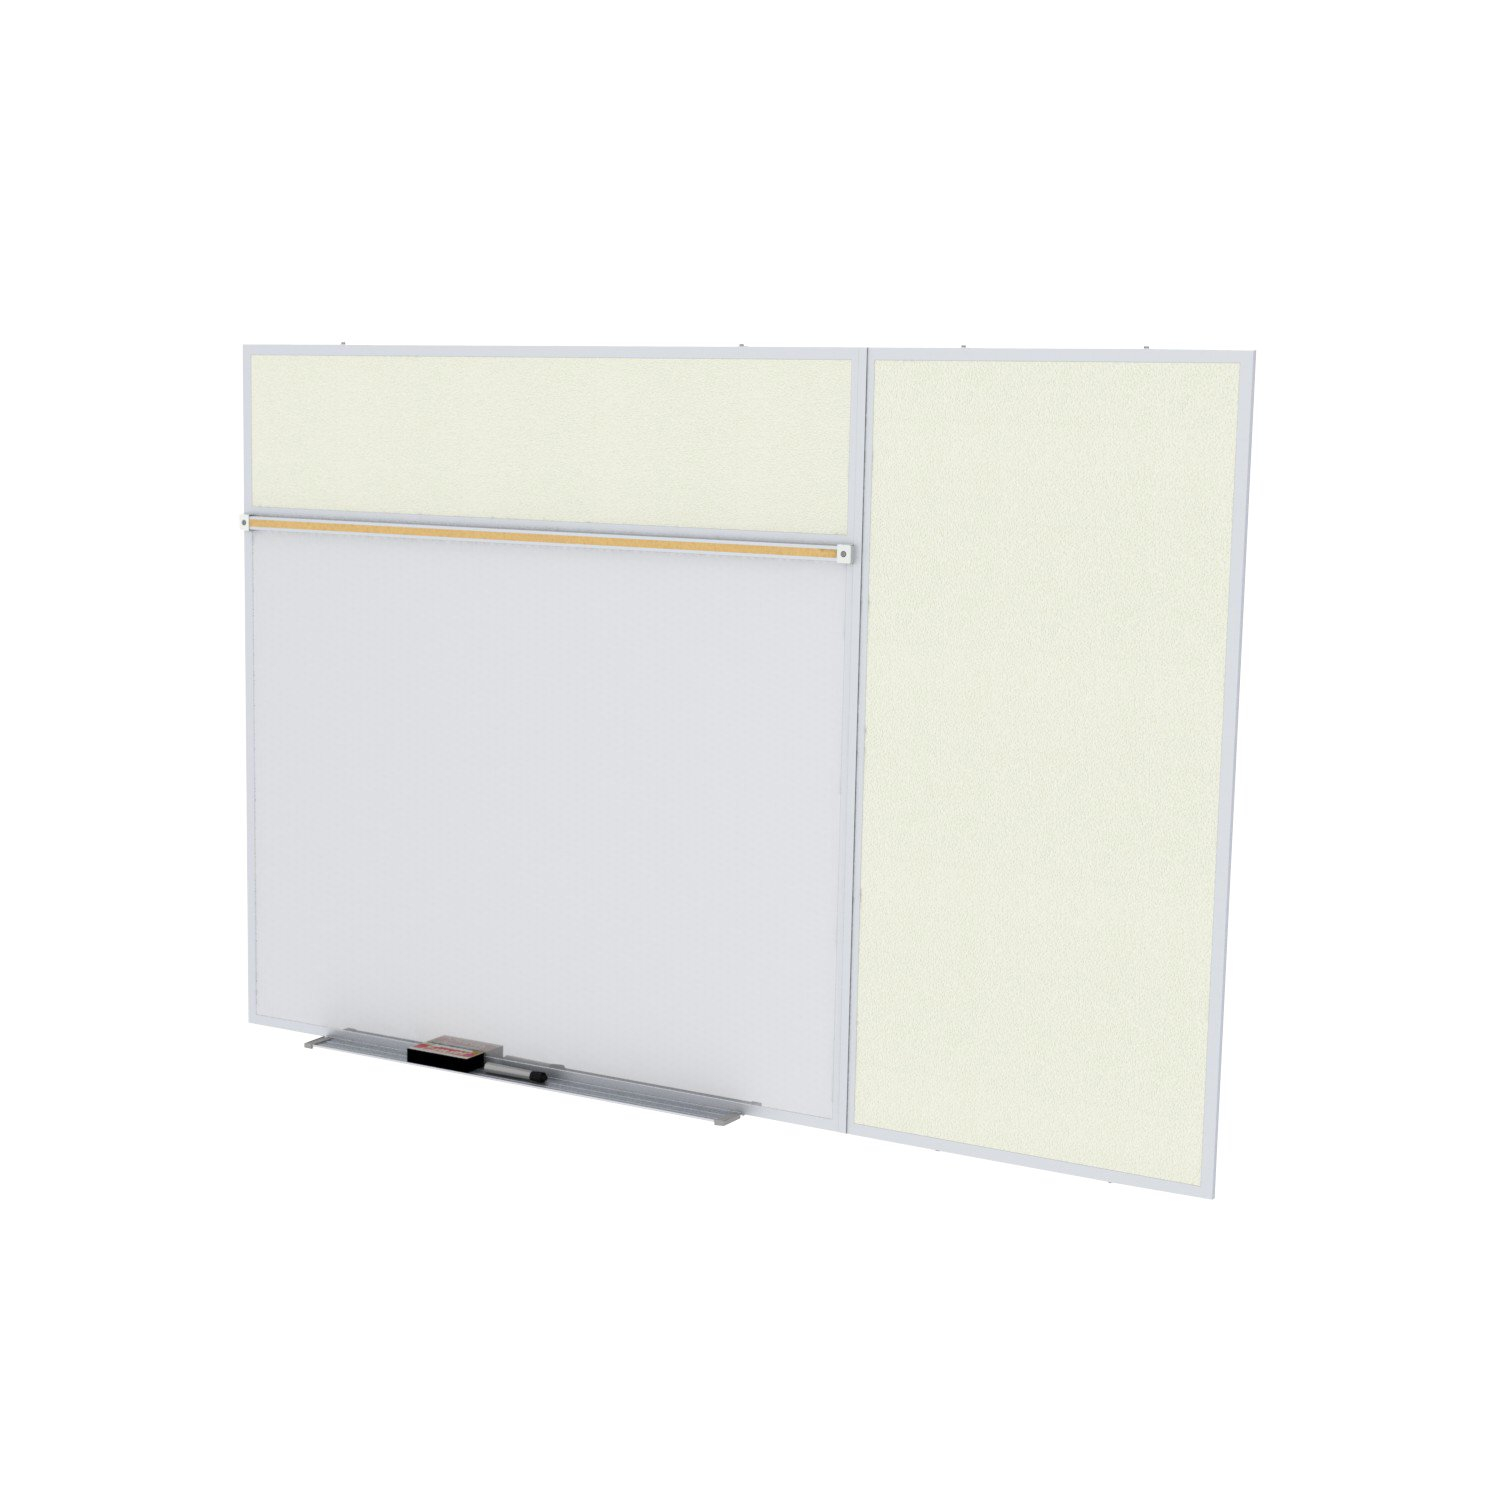 Ghent 4 x 8 Feet Combination Board, Porcelain Magnetic Whiteboard and Vinyl Fabric Bulletin Board, Ivory , Made in the USA